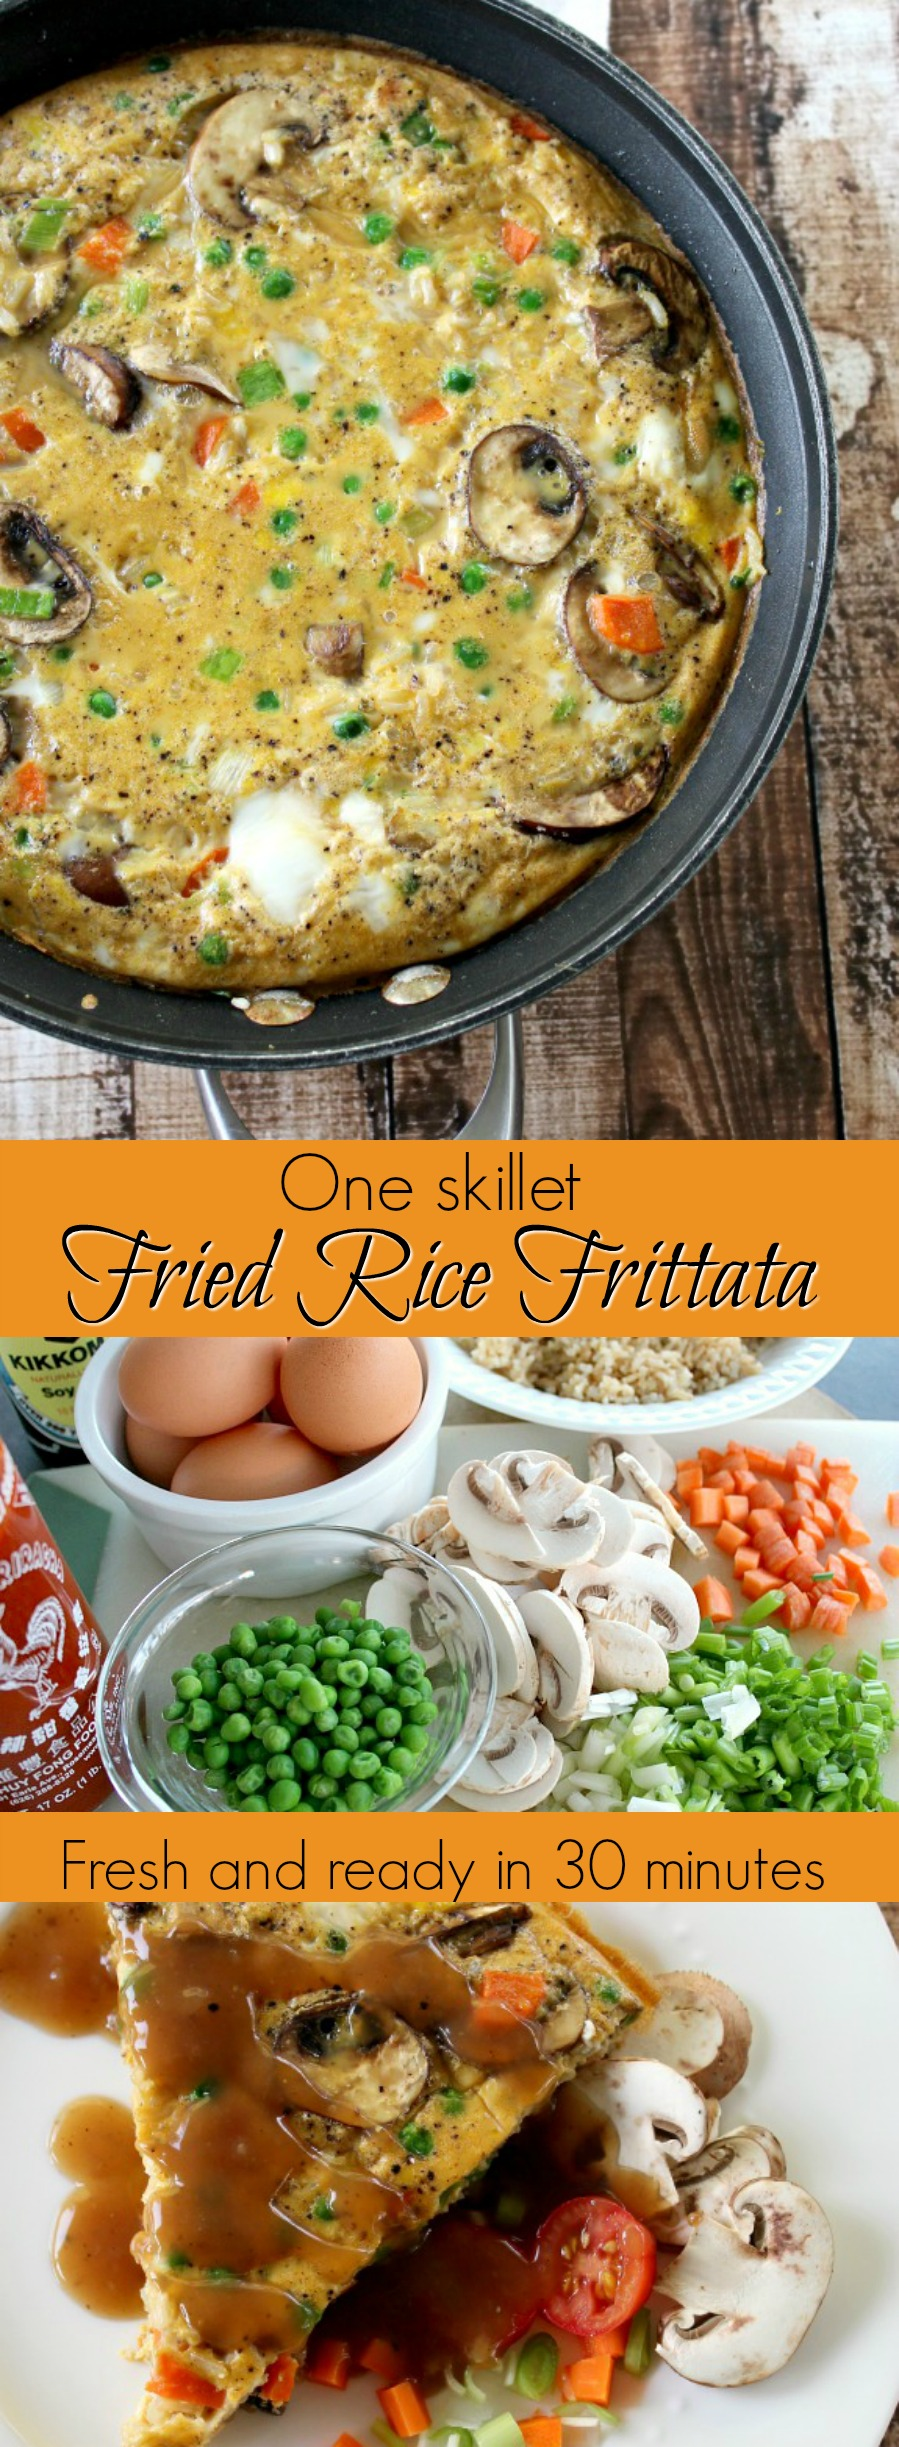 Here's a quick and fresh weeknight frittata you can whip up in no time, especially if you have some leftover brown rice.